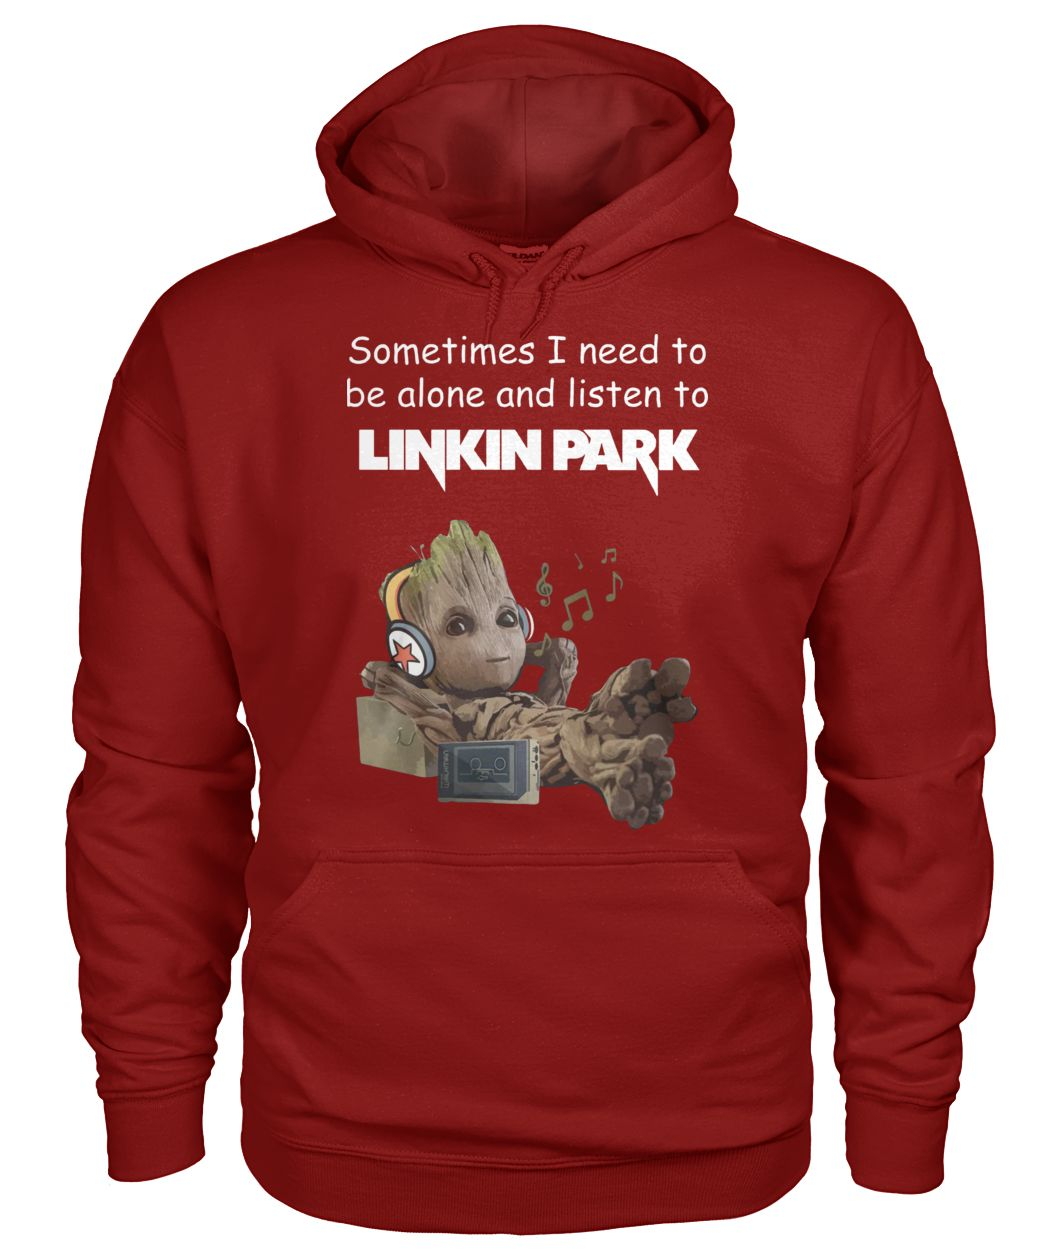 Baby Groot sometimes i need to be alone and listen to linkin park gildan hoodie